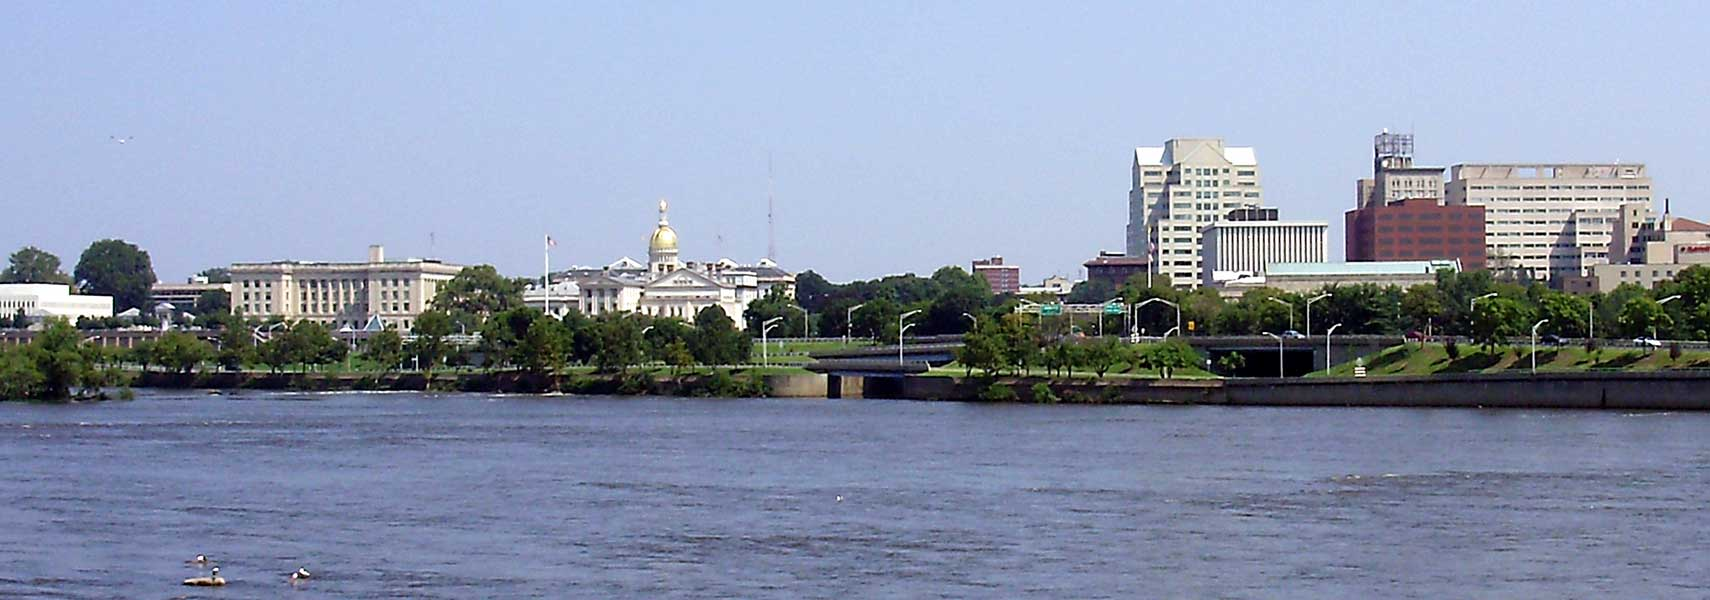 View of downtown Trenton, New Jersey and the mouth of the Assunpink Creek from across the Delaware River